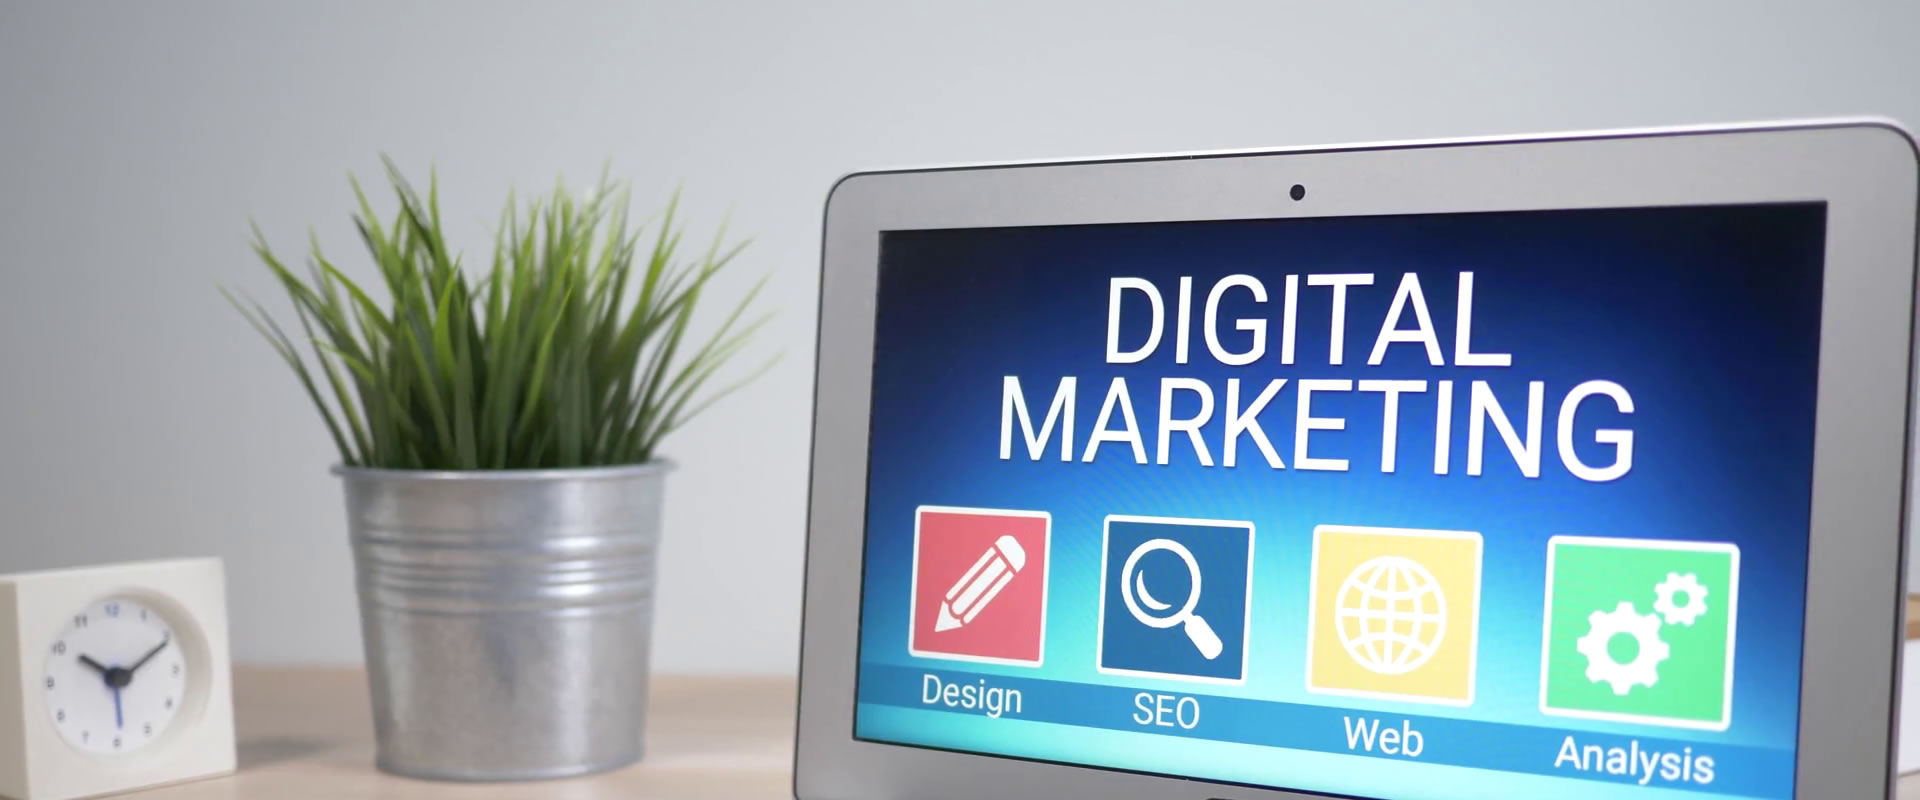 Digital Marketing Agency that Creates Websites and Digital Marketing Strategies for Every Type of Business.